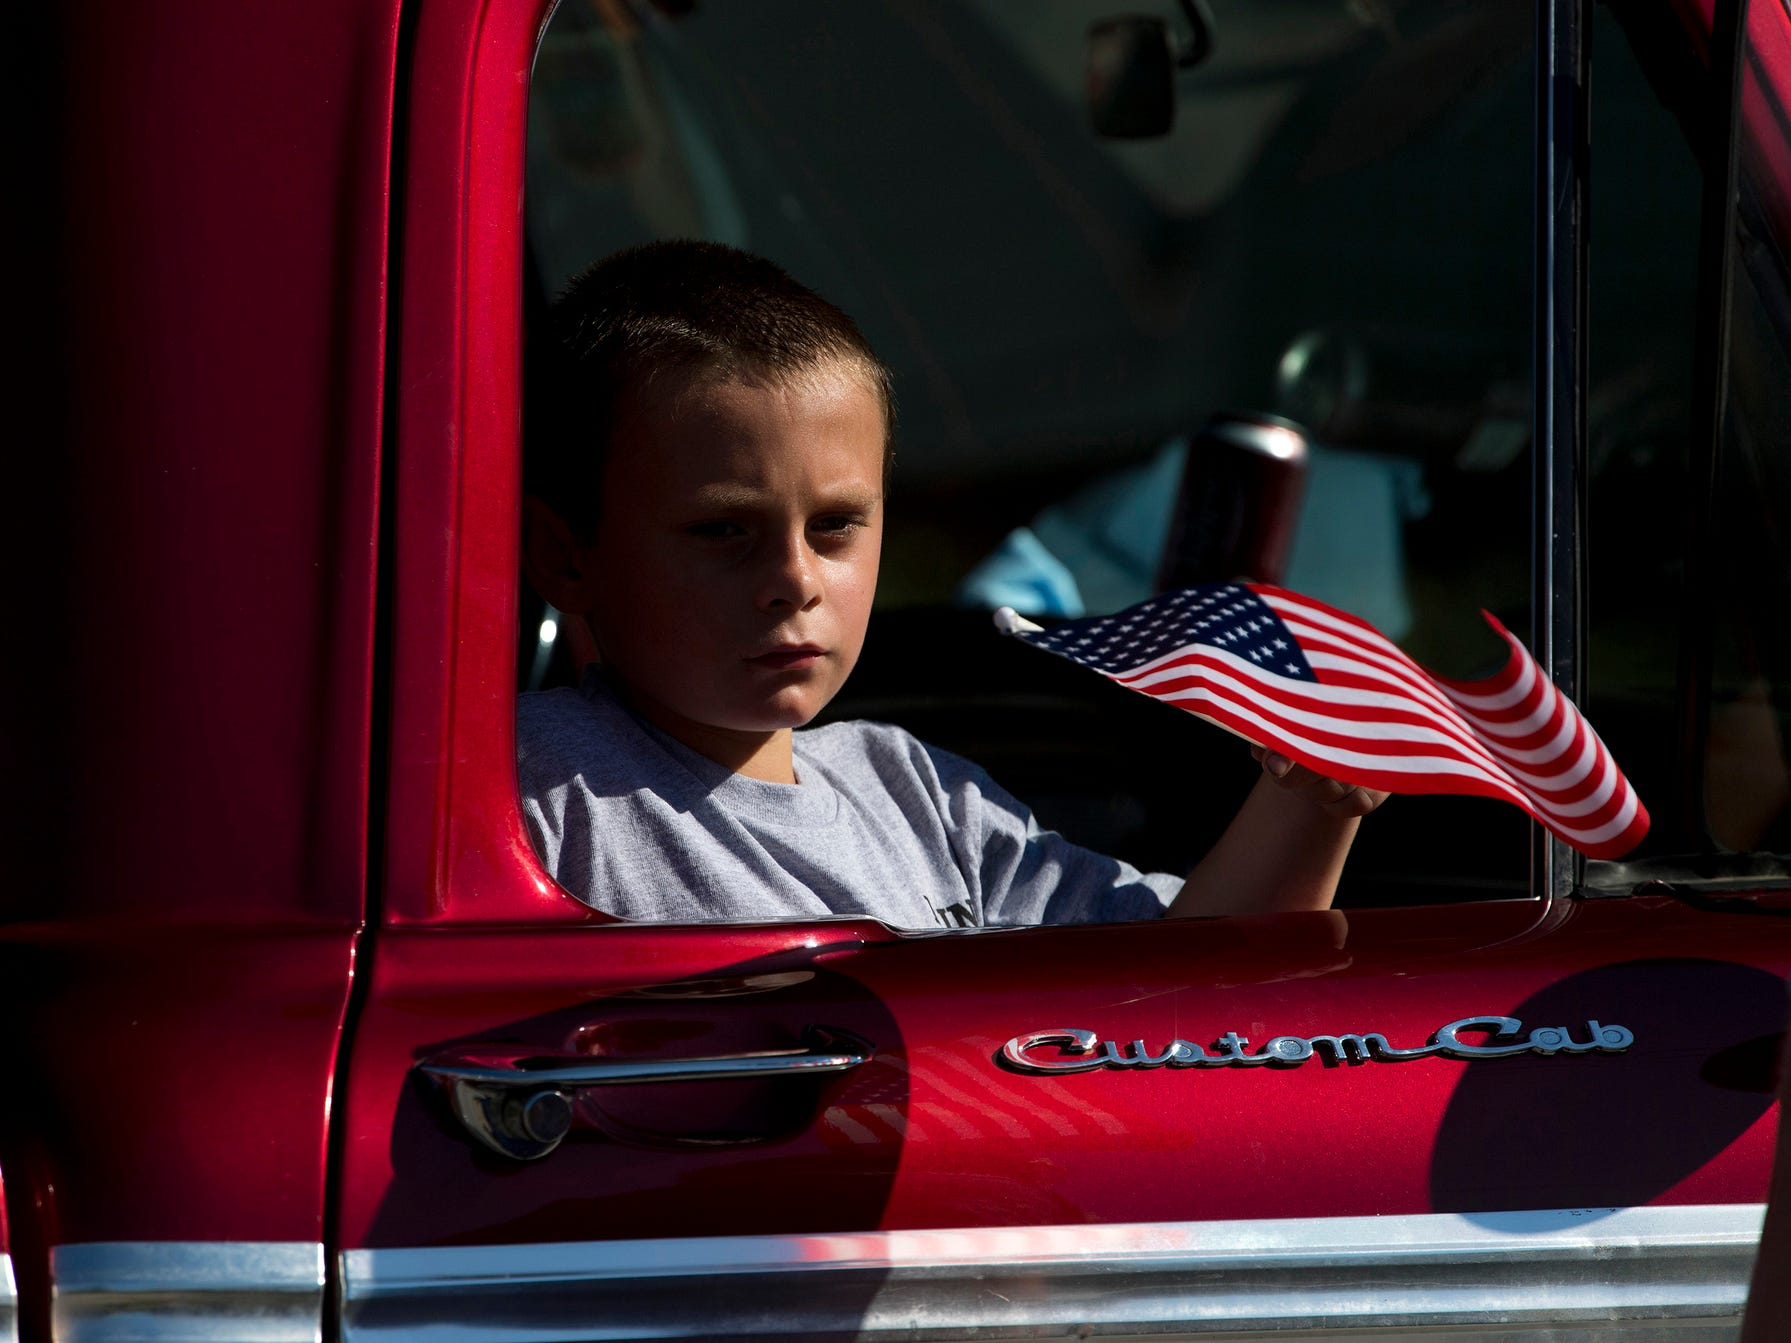 Ethan Bailey, 7, of Centralia, Ill., hitches a ride in a '66 Ford pickup driven by Bob Galloway of Lynnville, Ind.,at the 132nd Annual Labor Day Celebration in Boonville, Ind., Monday morning, September 3, 2018. They were representing the Laborers Local 561.